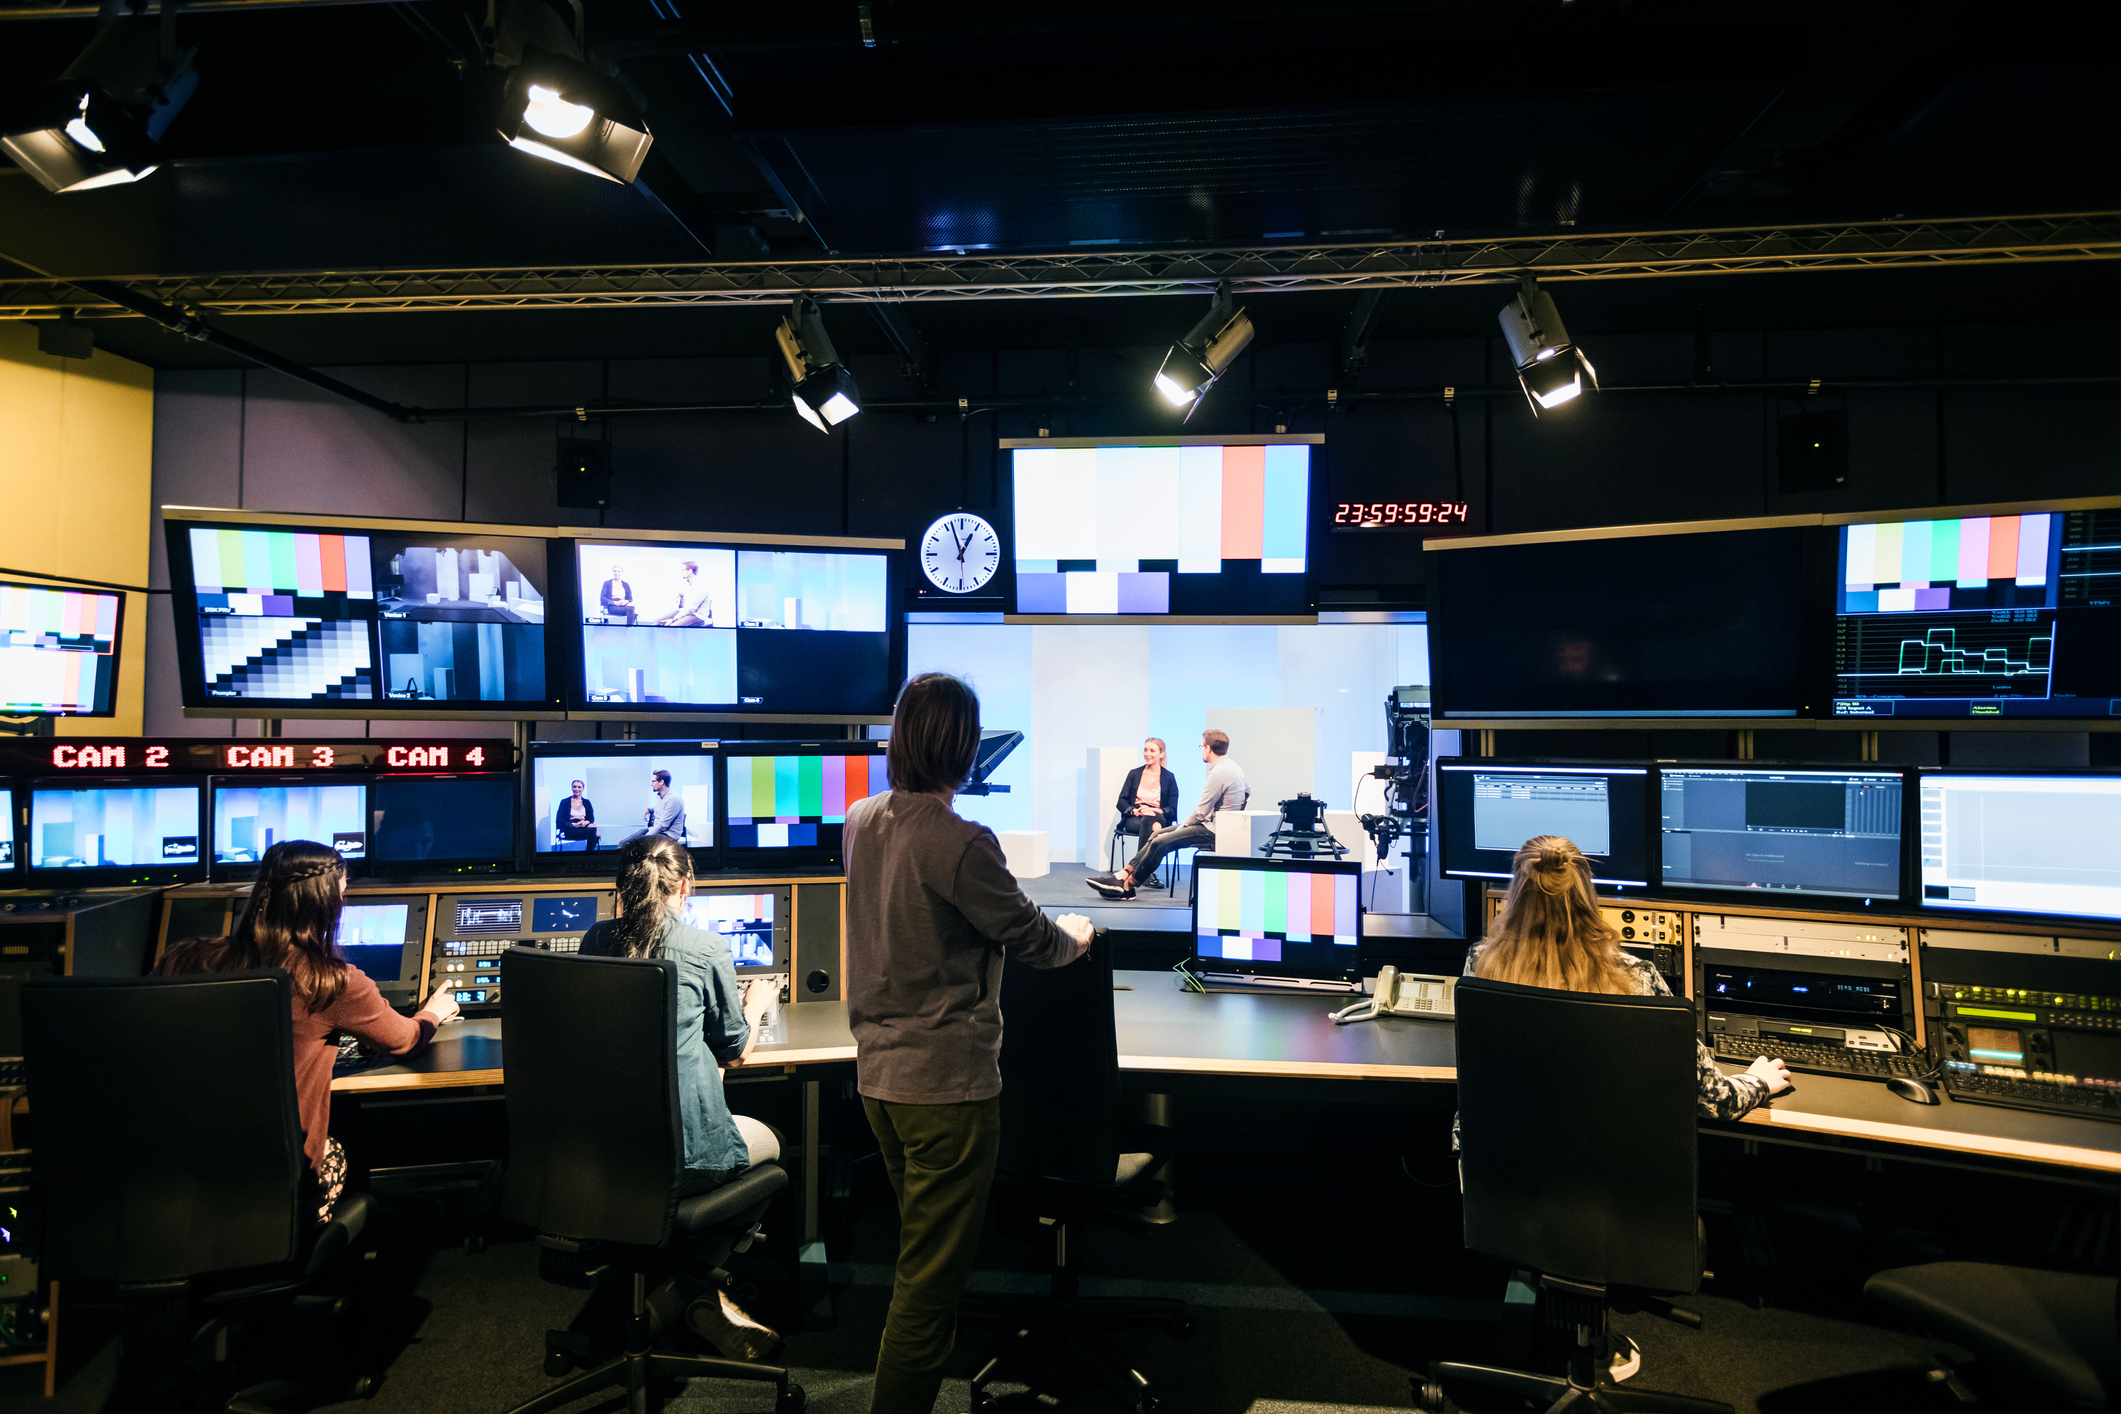 Audio-visual industry suffers as production slows